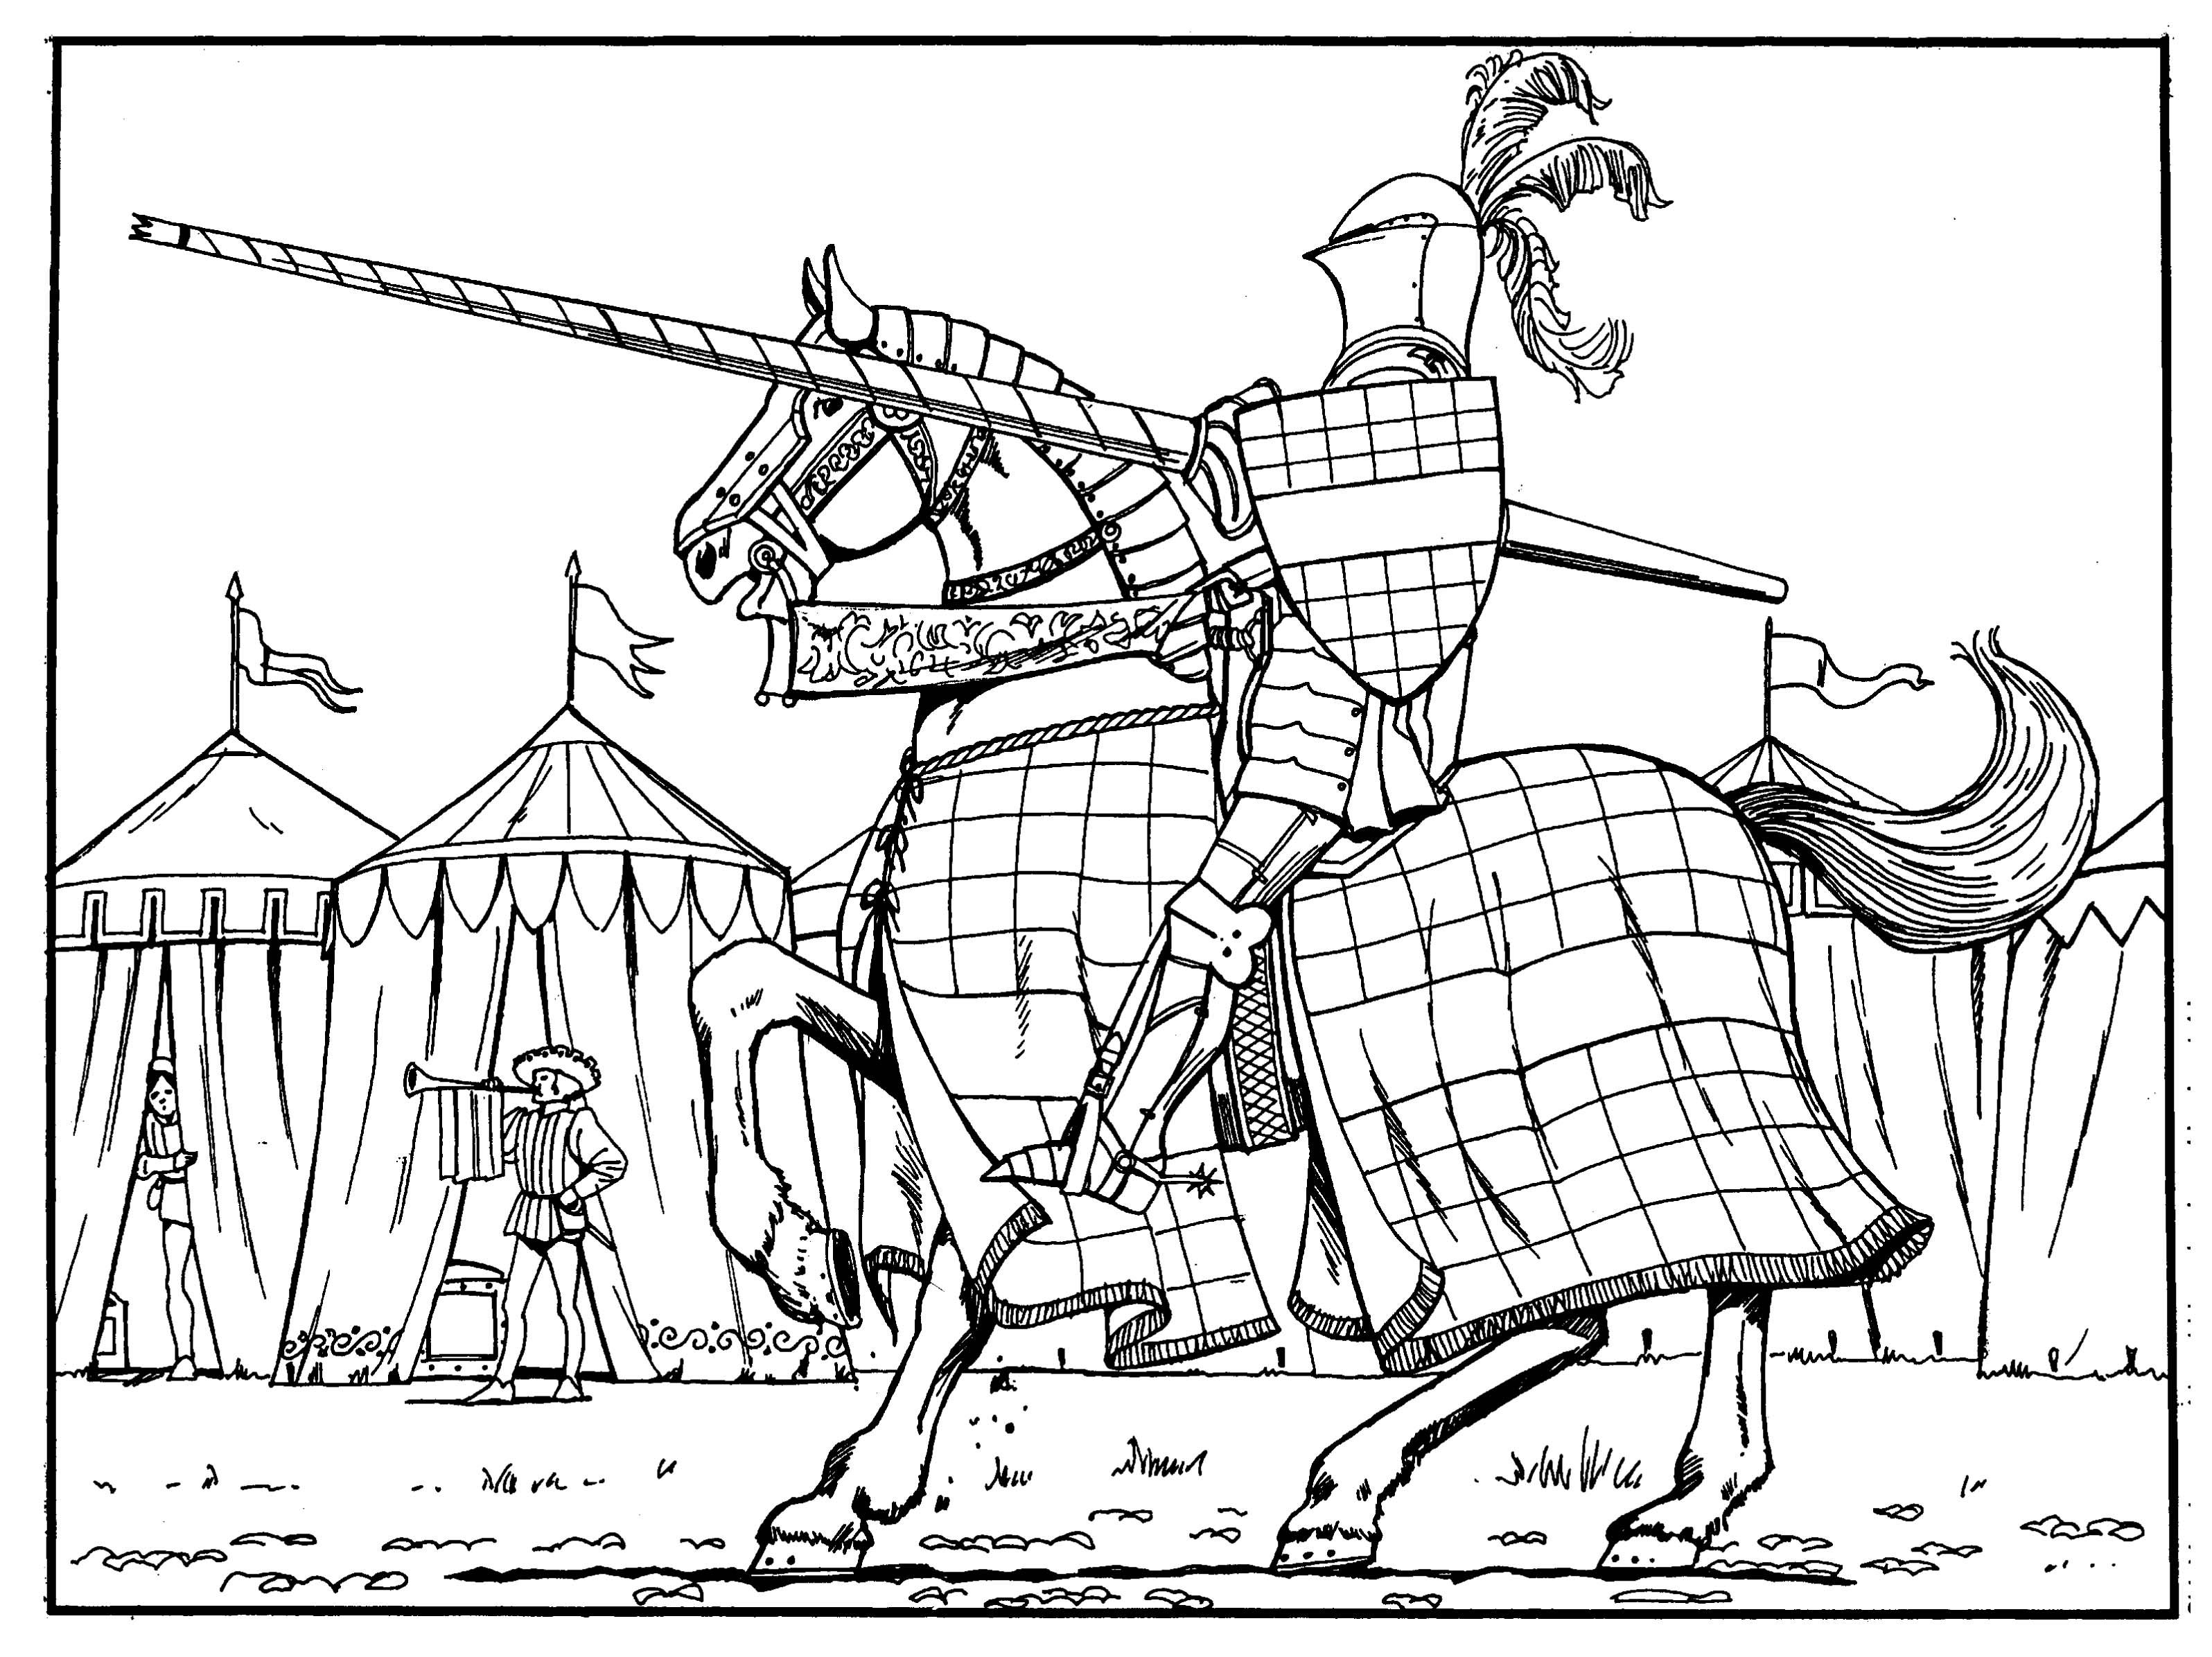 medieval times coloring pages medieval coloring pages to download and print for free pages times medieval coloring